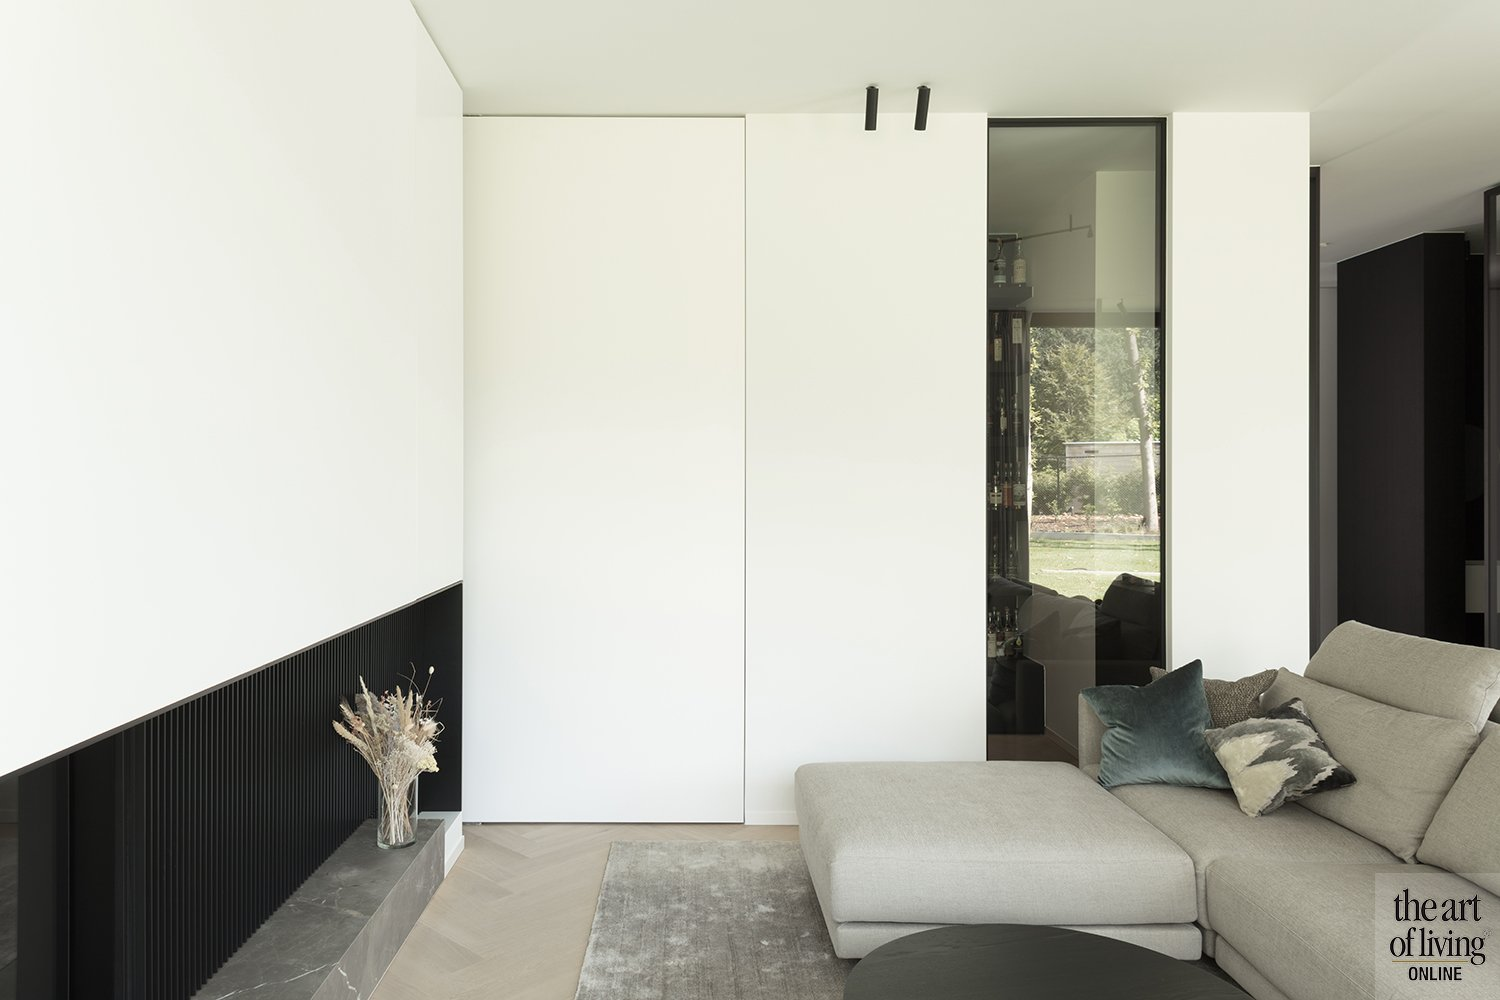 stijlvol interieur, Niko Wouters, the art of living